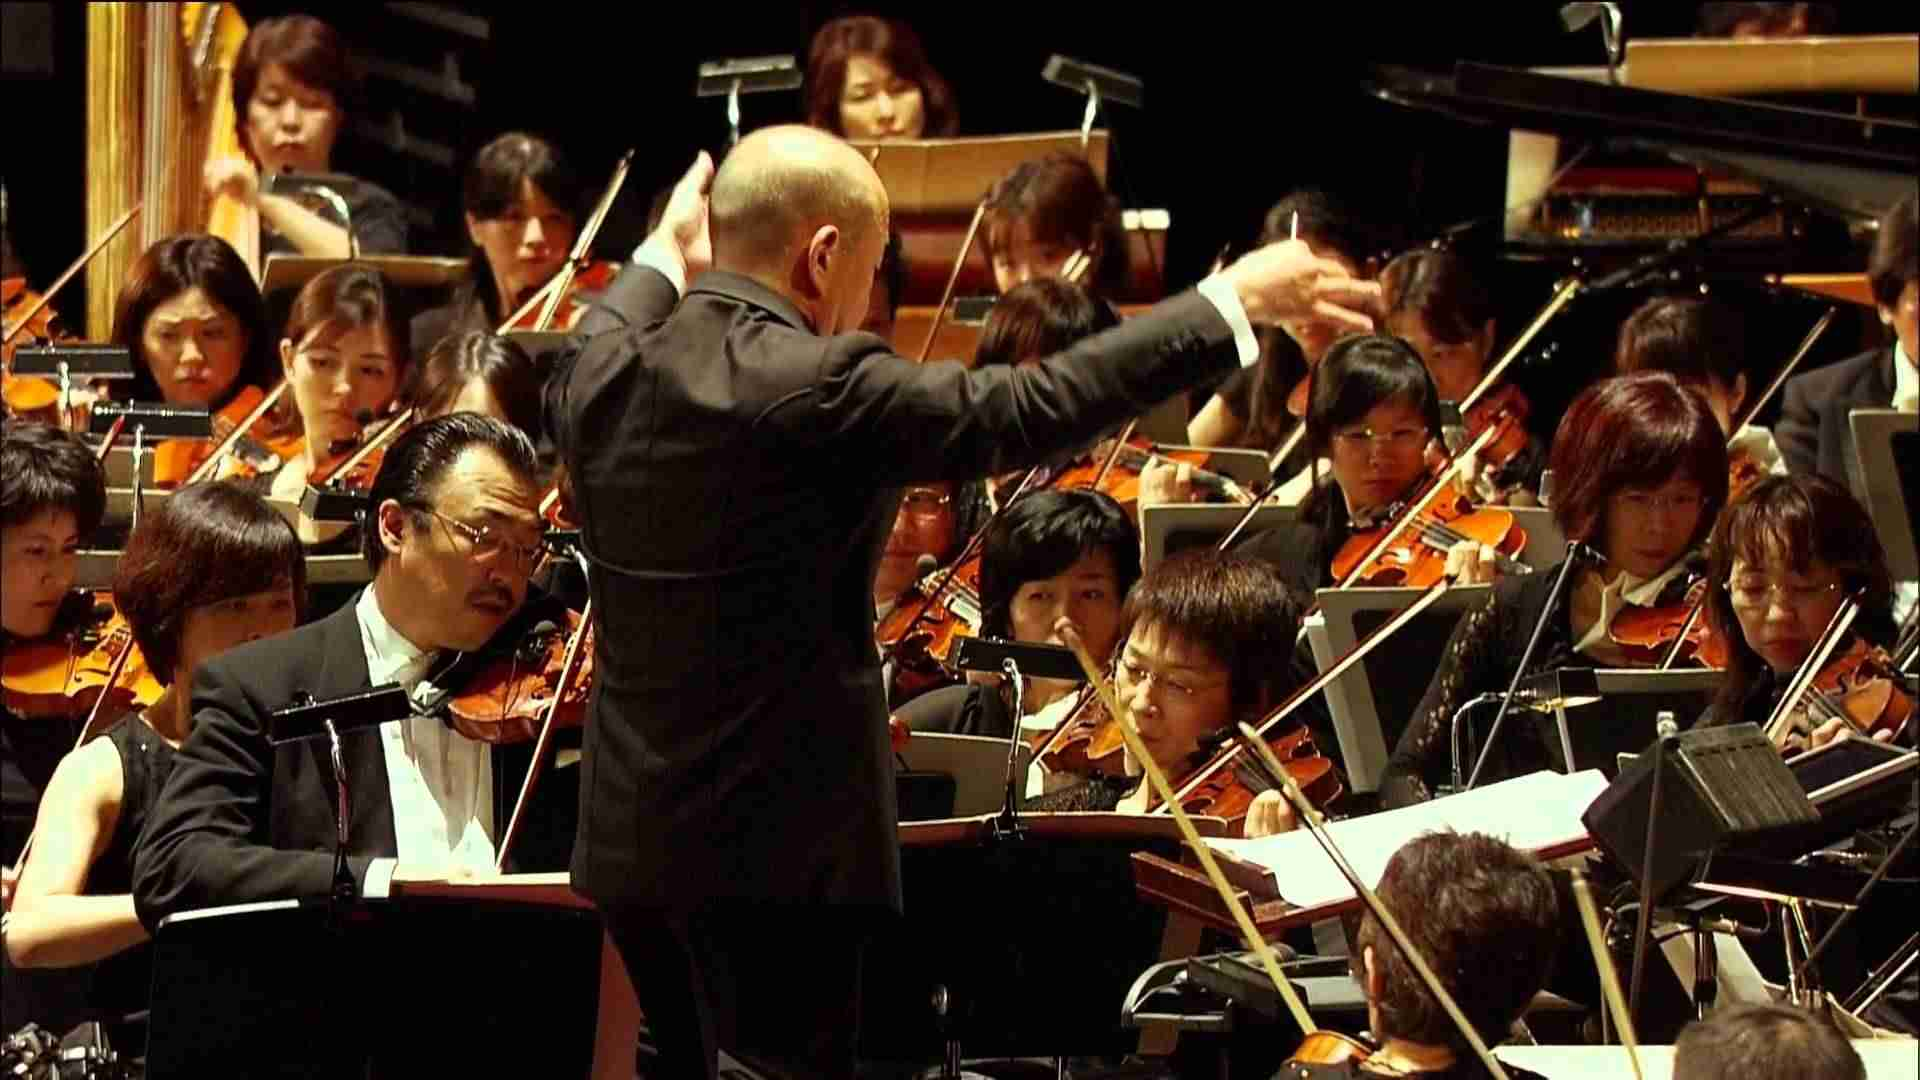 Joe Hisaishi Budokan Studio Ghibli 25 Years Concert 1080 Sub - YouTube